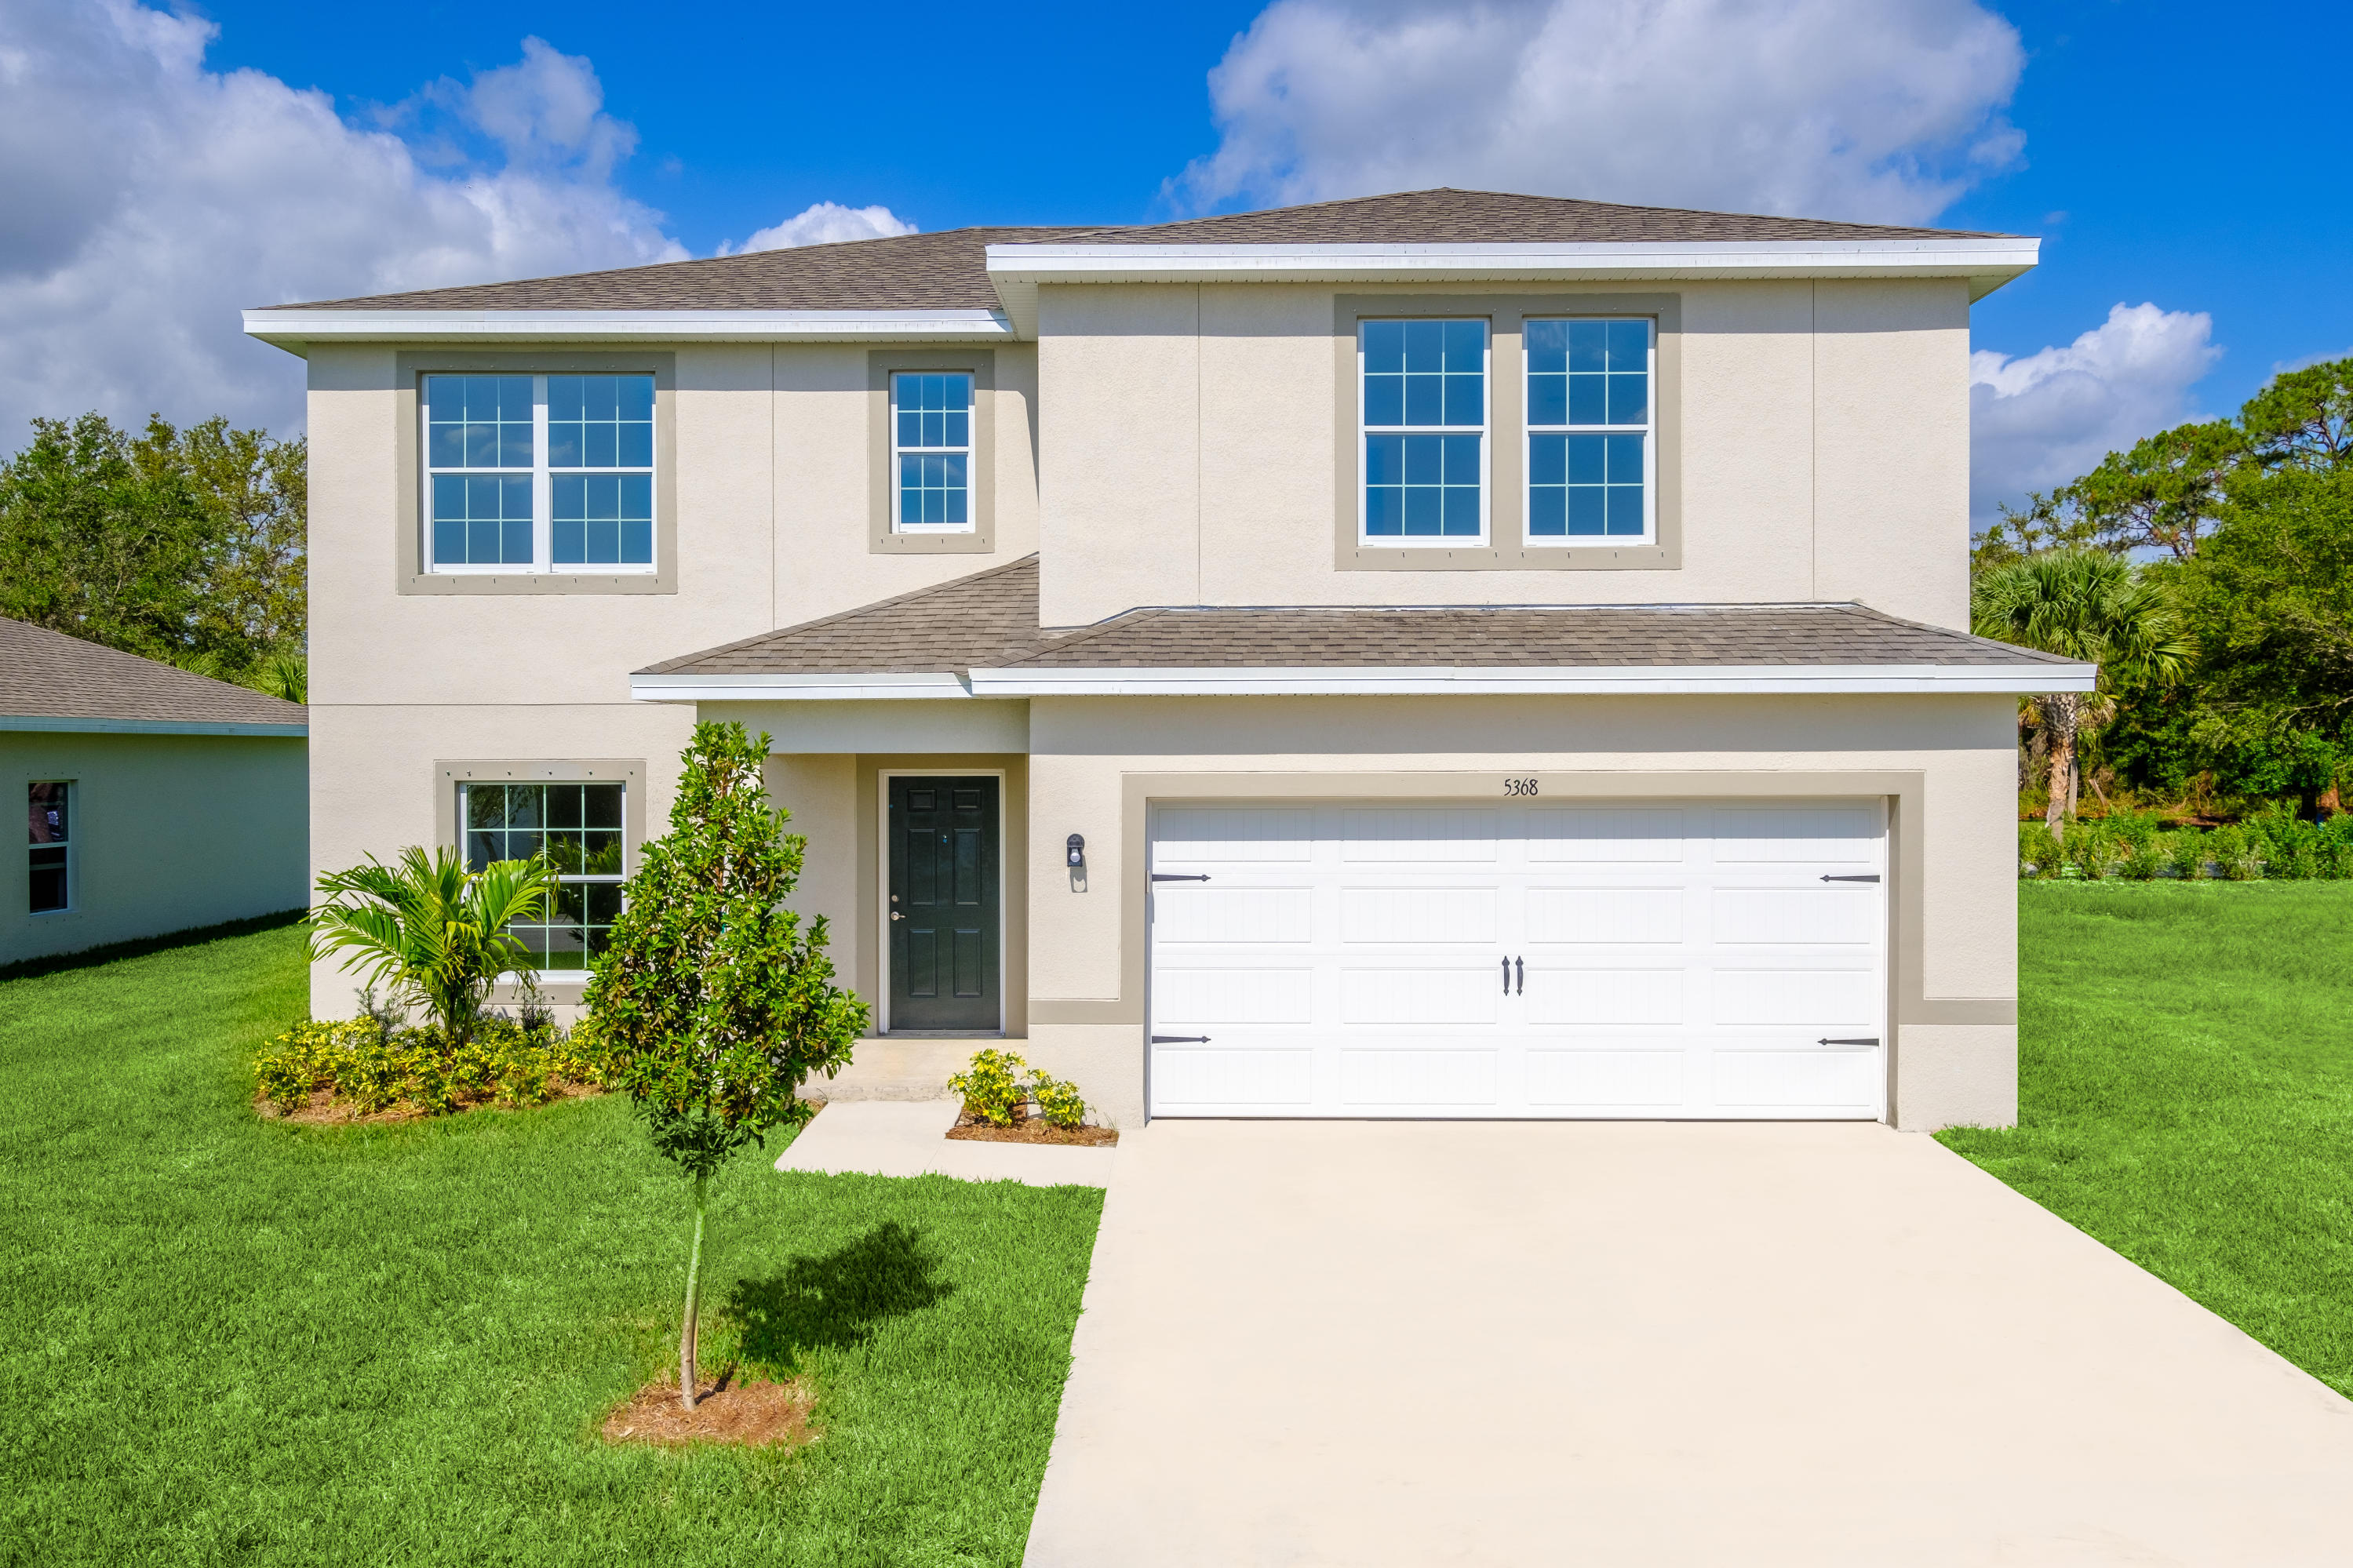 Lakewood Park Homes For Sale In Fort Pierce Fl